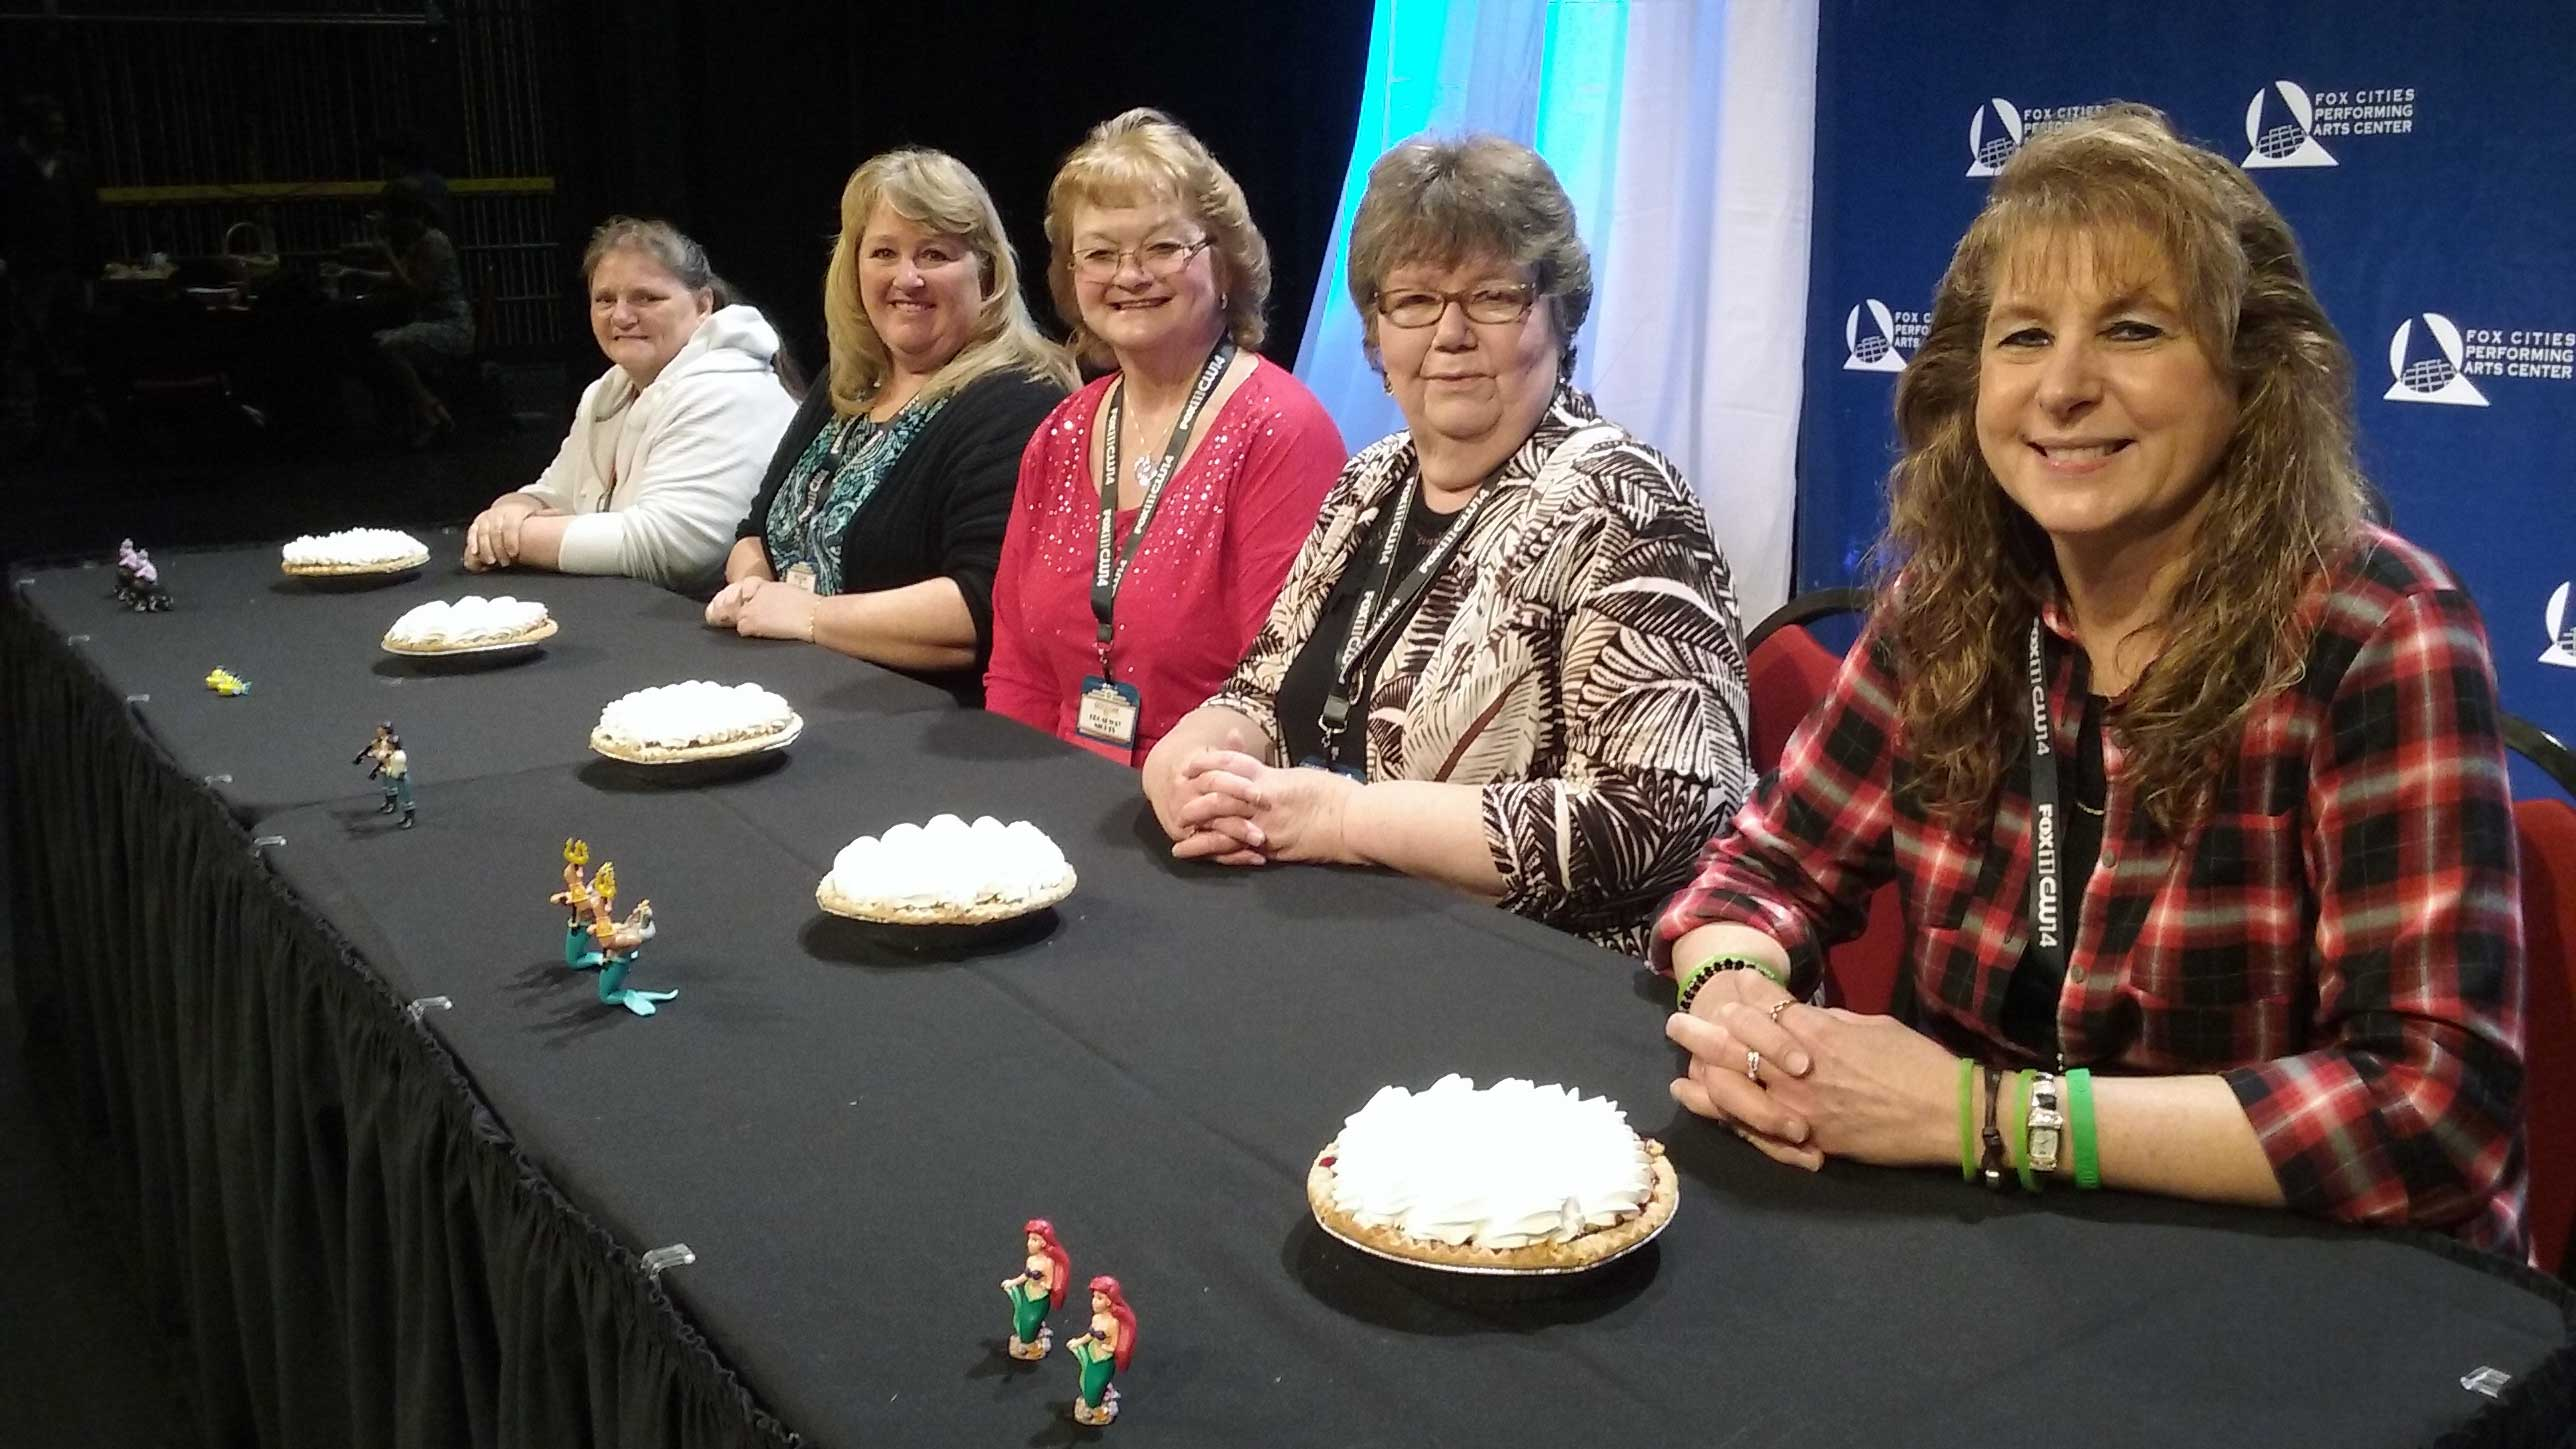 L-R: Good Day Wisconsin Broadway Nights finalists Marilyn Miller, Coree Wallander, Jill Bowers, Helen Raddant and Coreen Jorgensen pose before digging into their pies April 13, 2017, at the Fox Cities Performing Arts Center in Appleton. (WLUK/Kimberly Krejcarek)